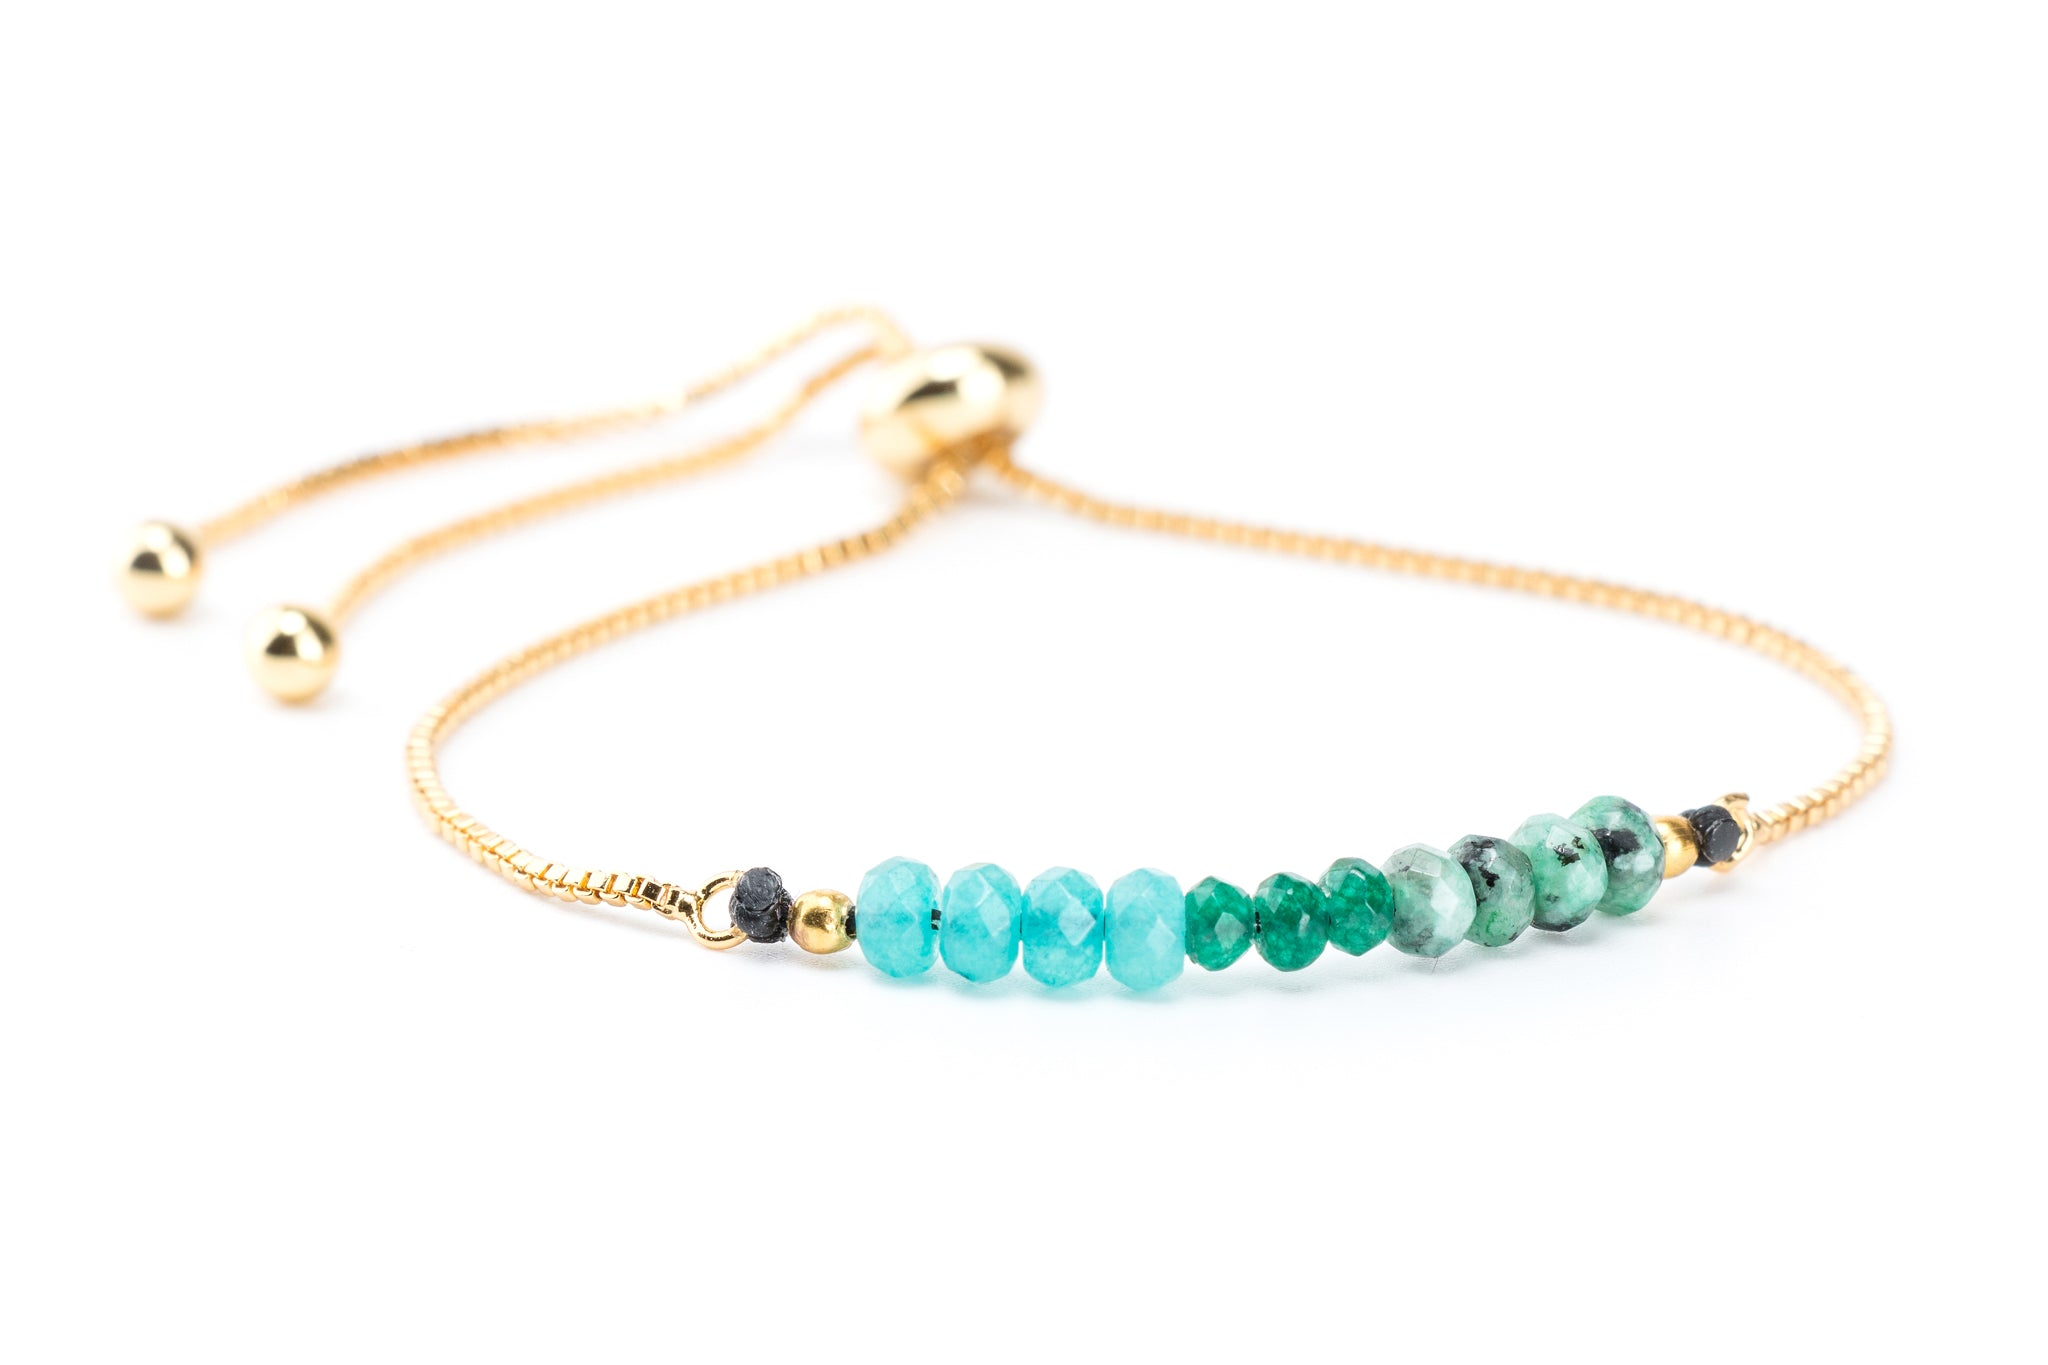 Ombre Gemstones on Gold Slide Chain Bracelet - Filosophy